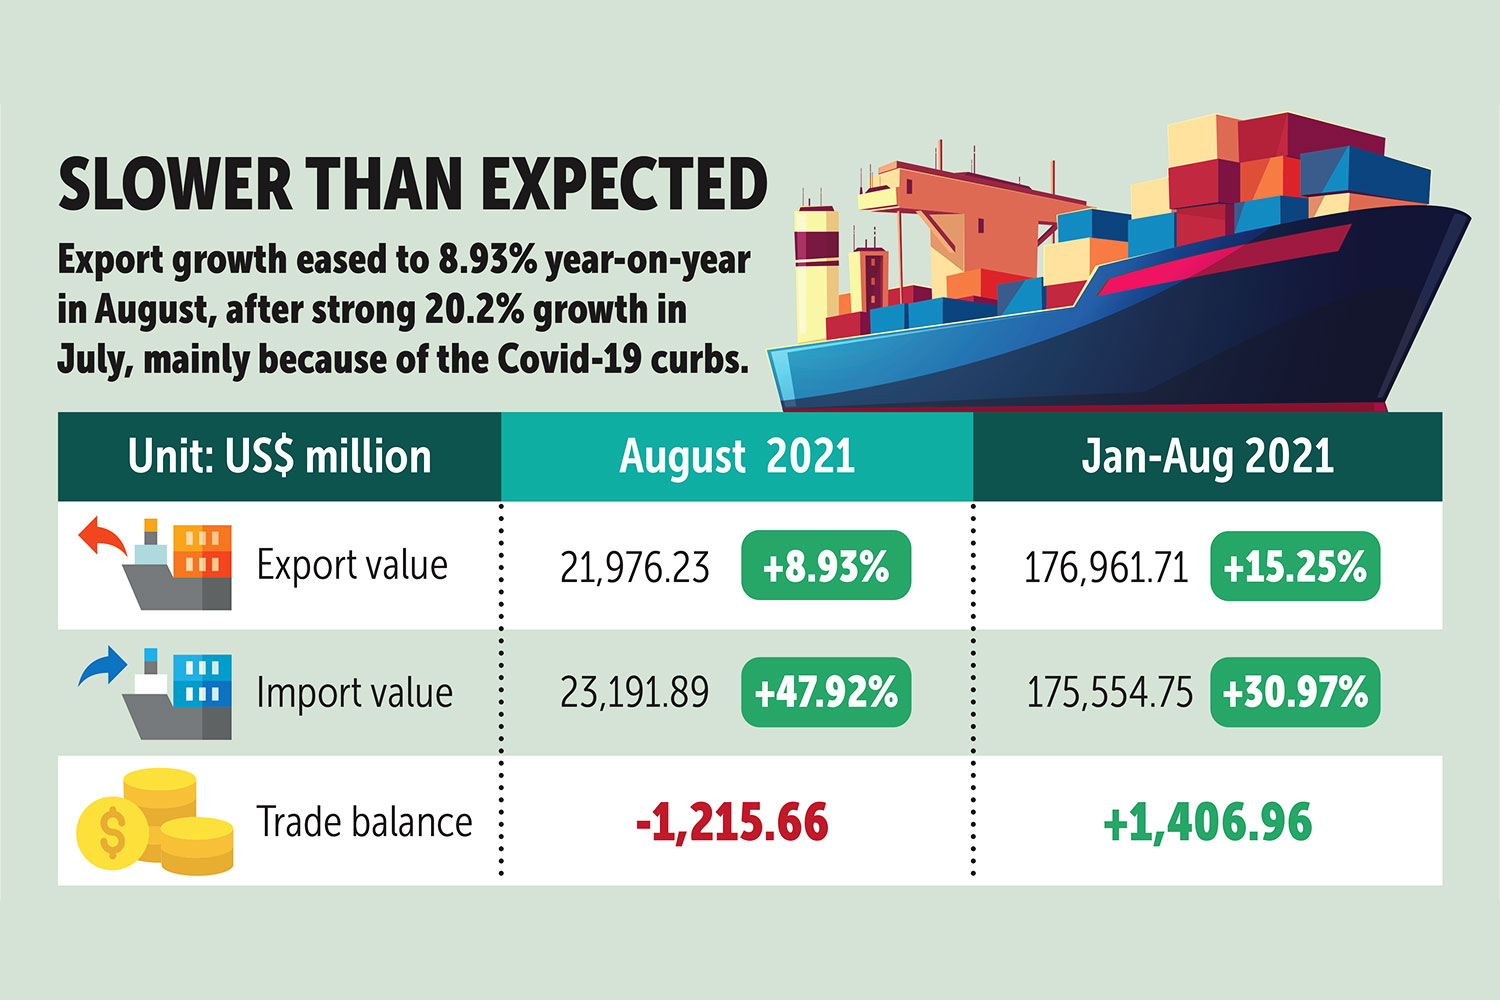 Exports continue growth in August, but slacken pace